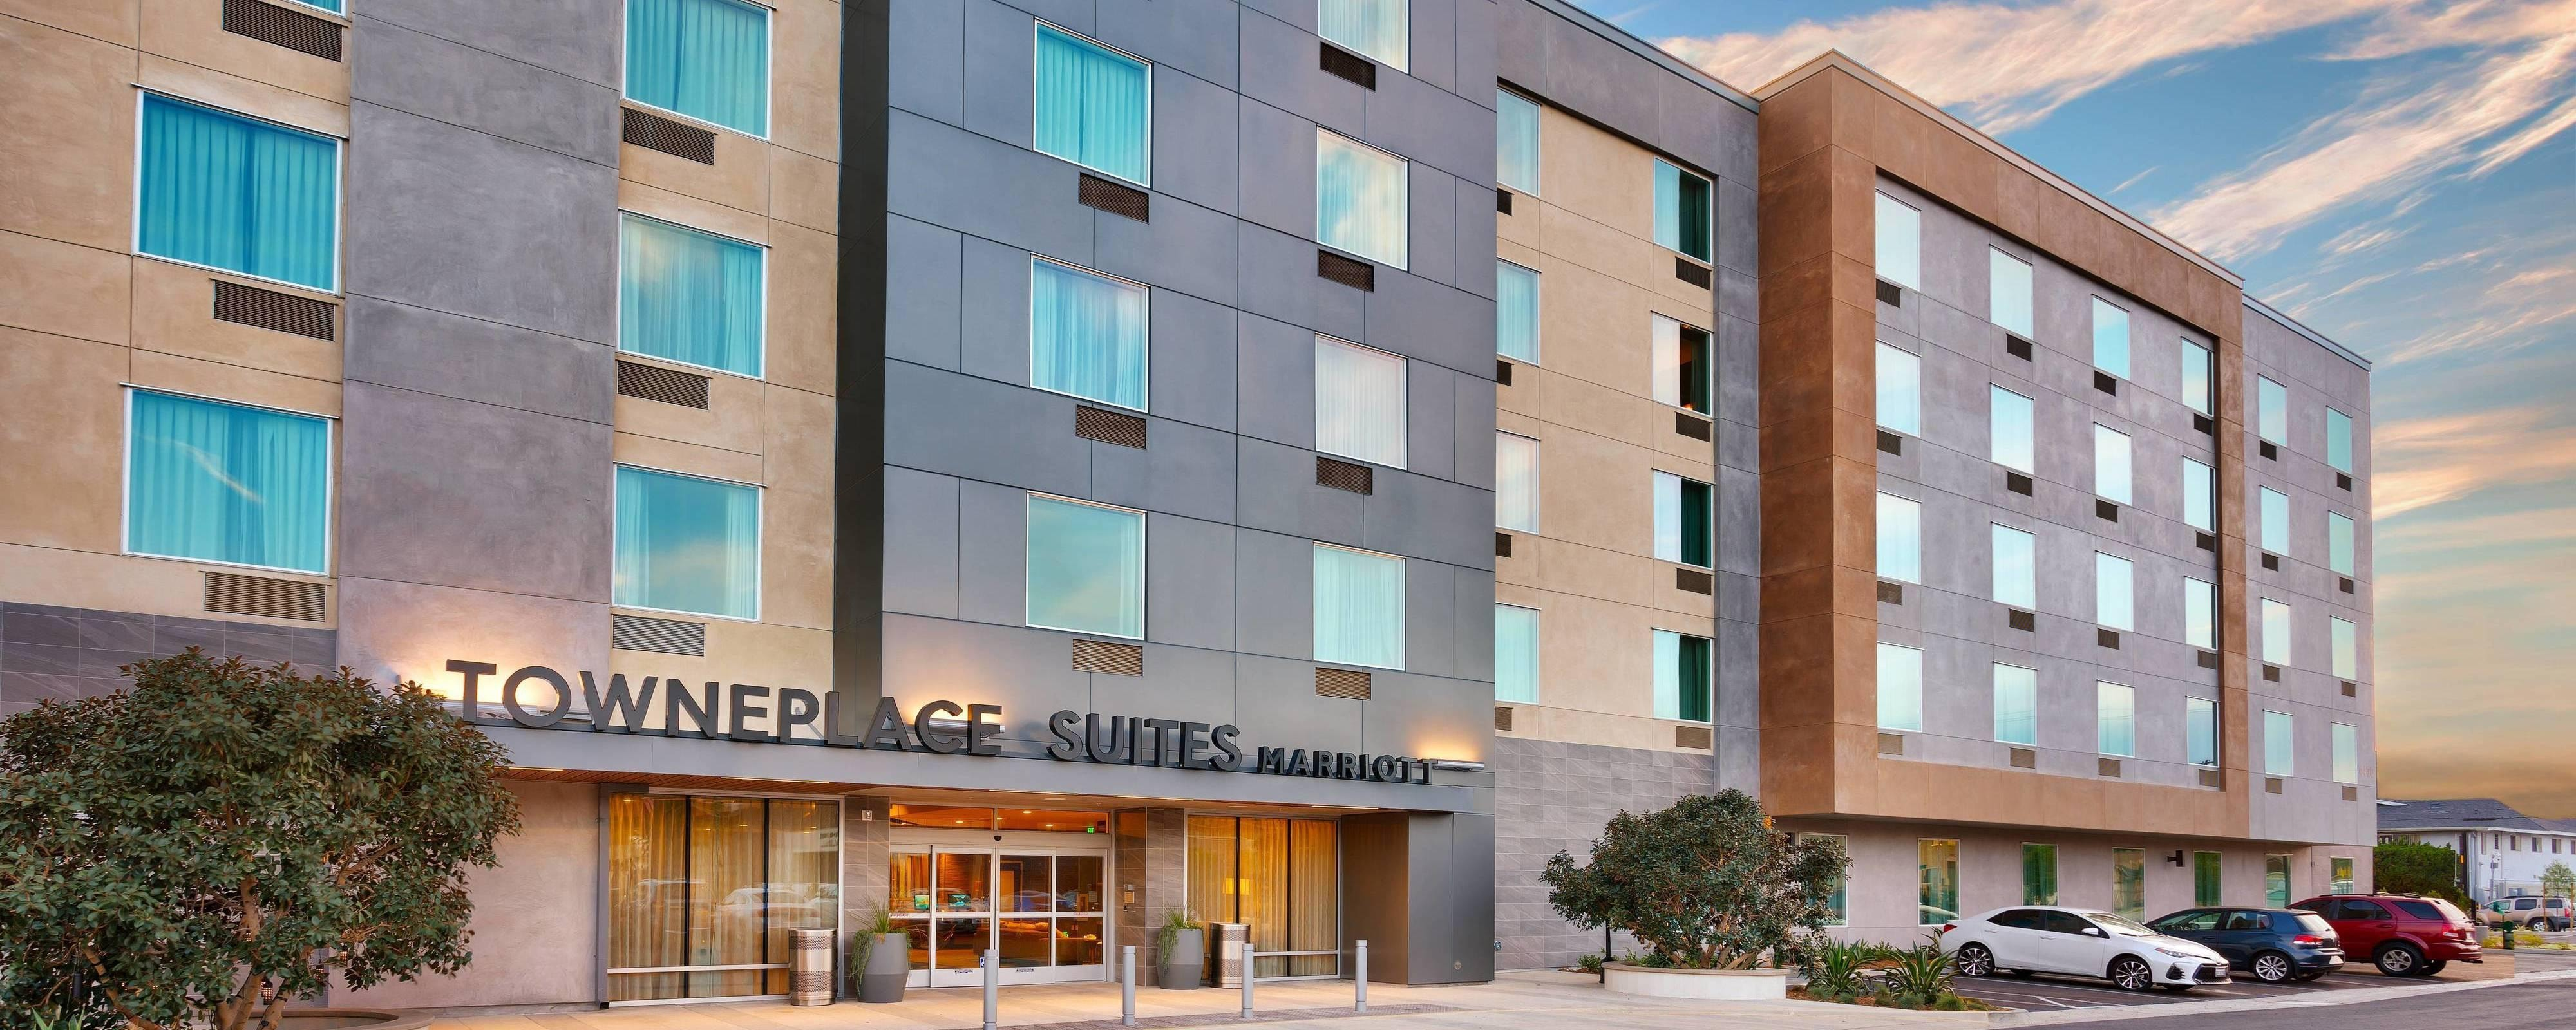 hawthorne california hotel rooms towneplace suites los. Black Bedroom Furniture Sets. Home Design Ideas